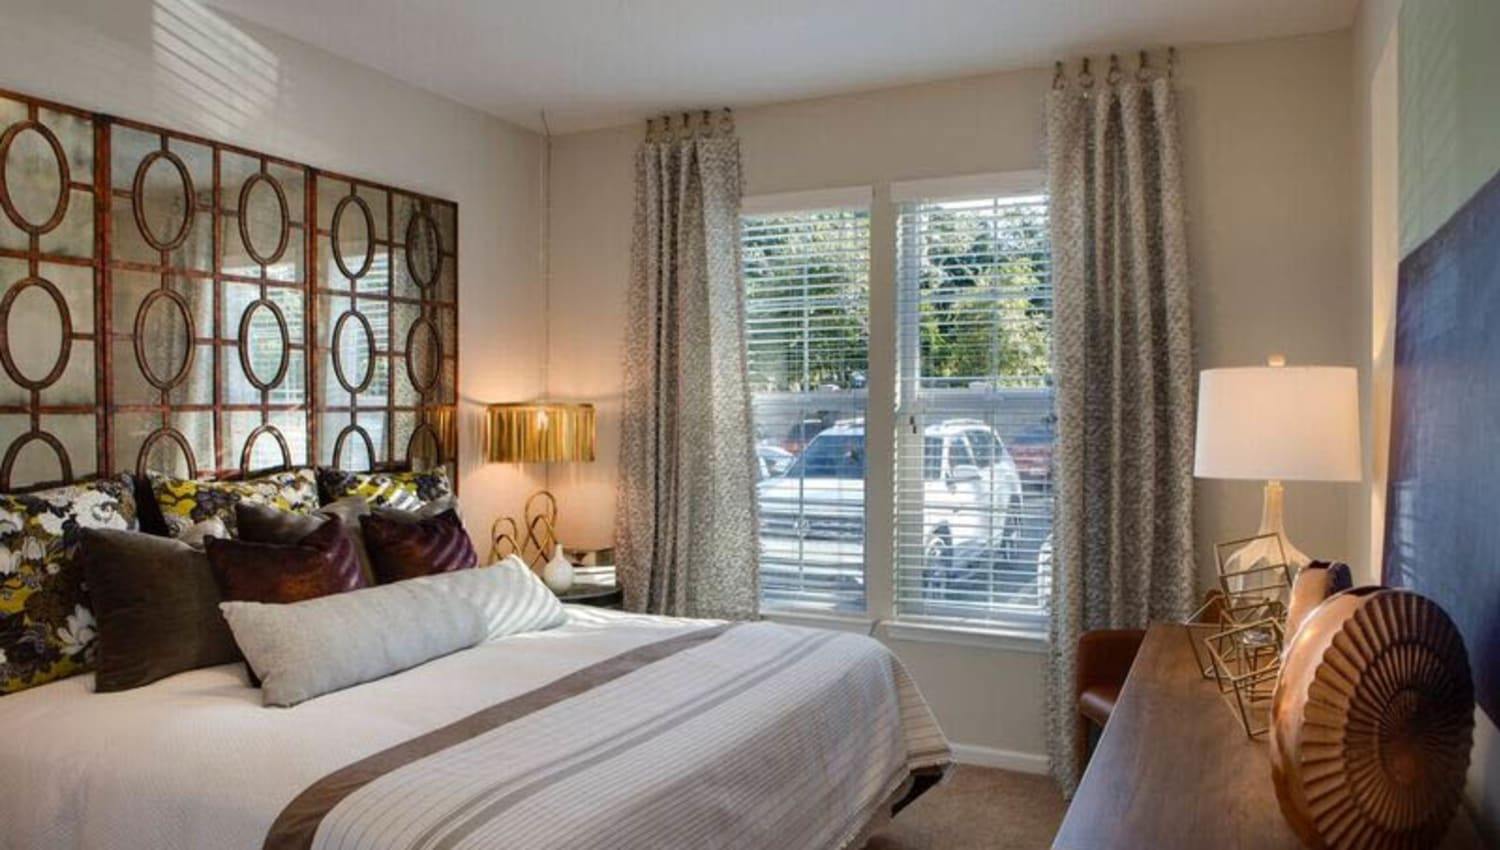 Large bay window and modern furnishings in a model home's master bedroom at Canopy at Citrus Park in Tampa, Florida